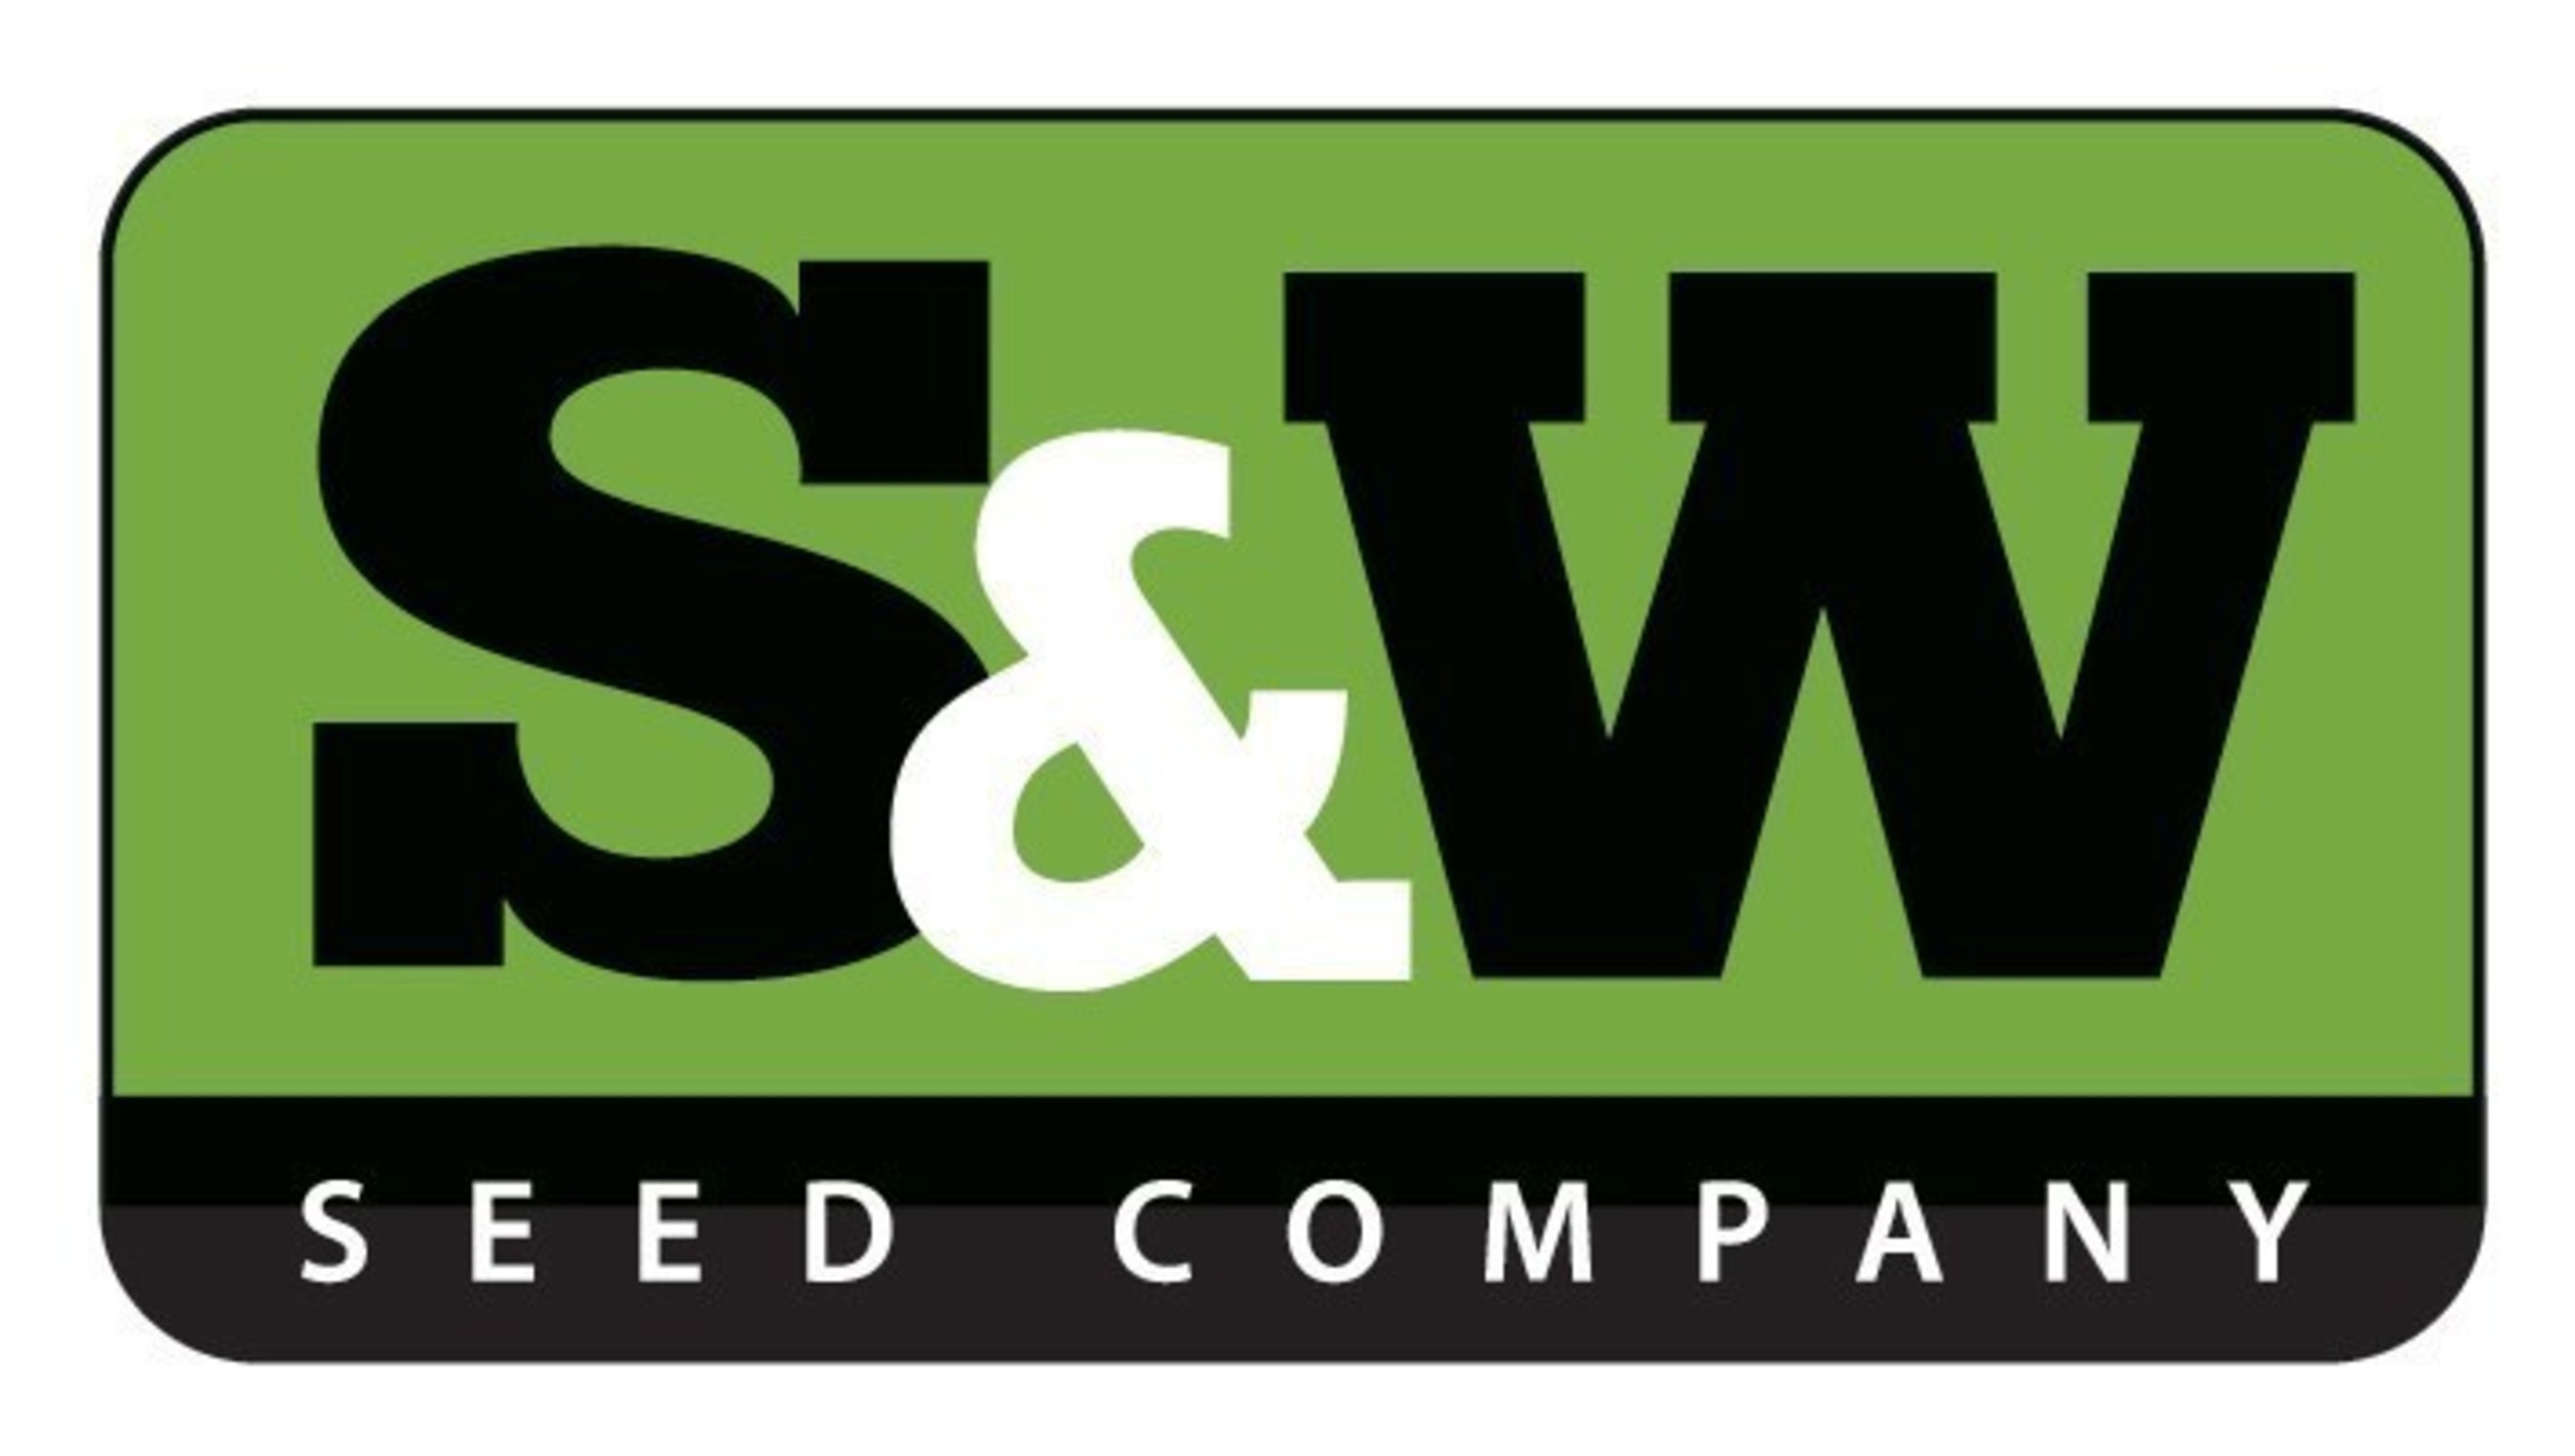 Headquartered in the Central Valley of California, S&W Seed Company is a leading provider of seed genetics, ...